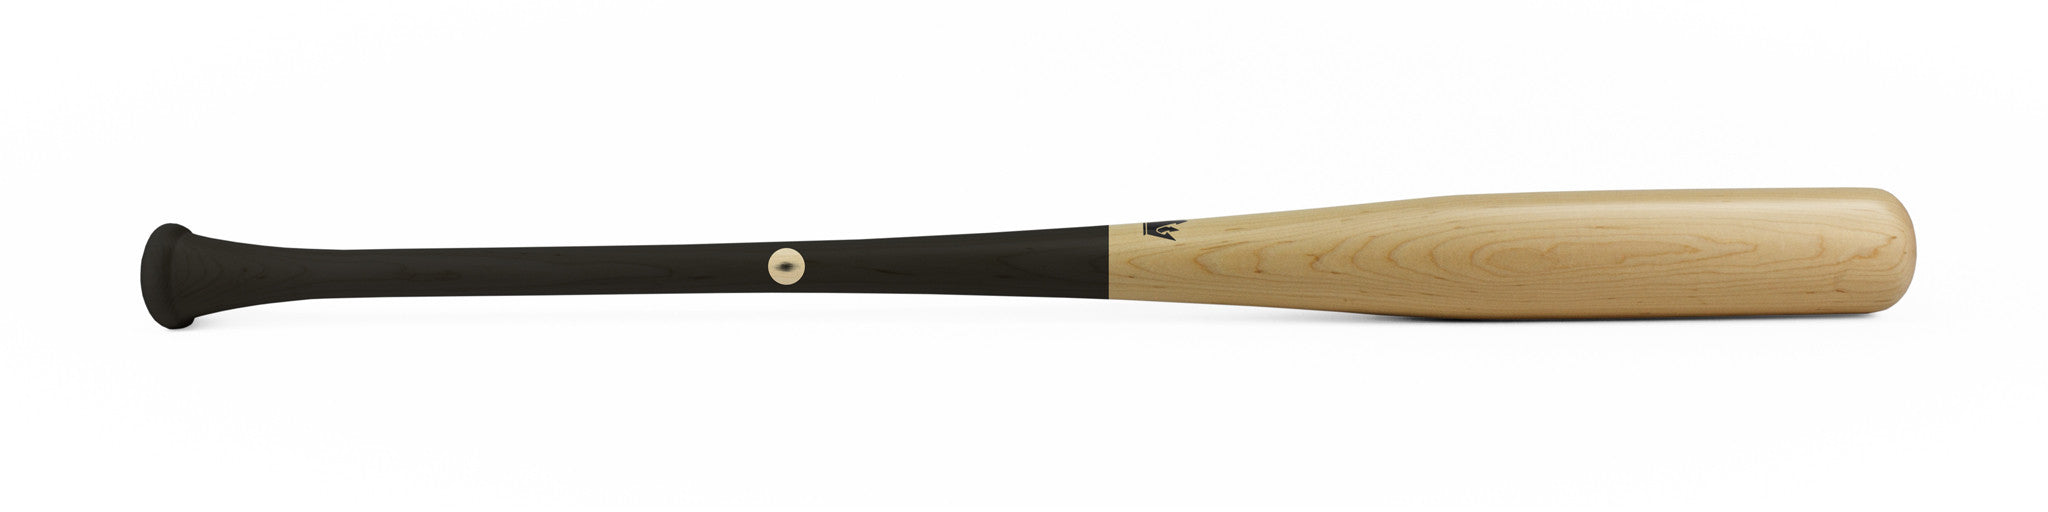 Wood bat - Birch model 175G-P Black Dip - 17